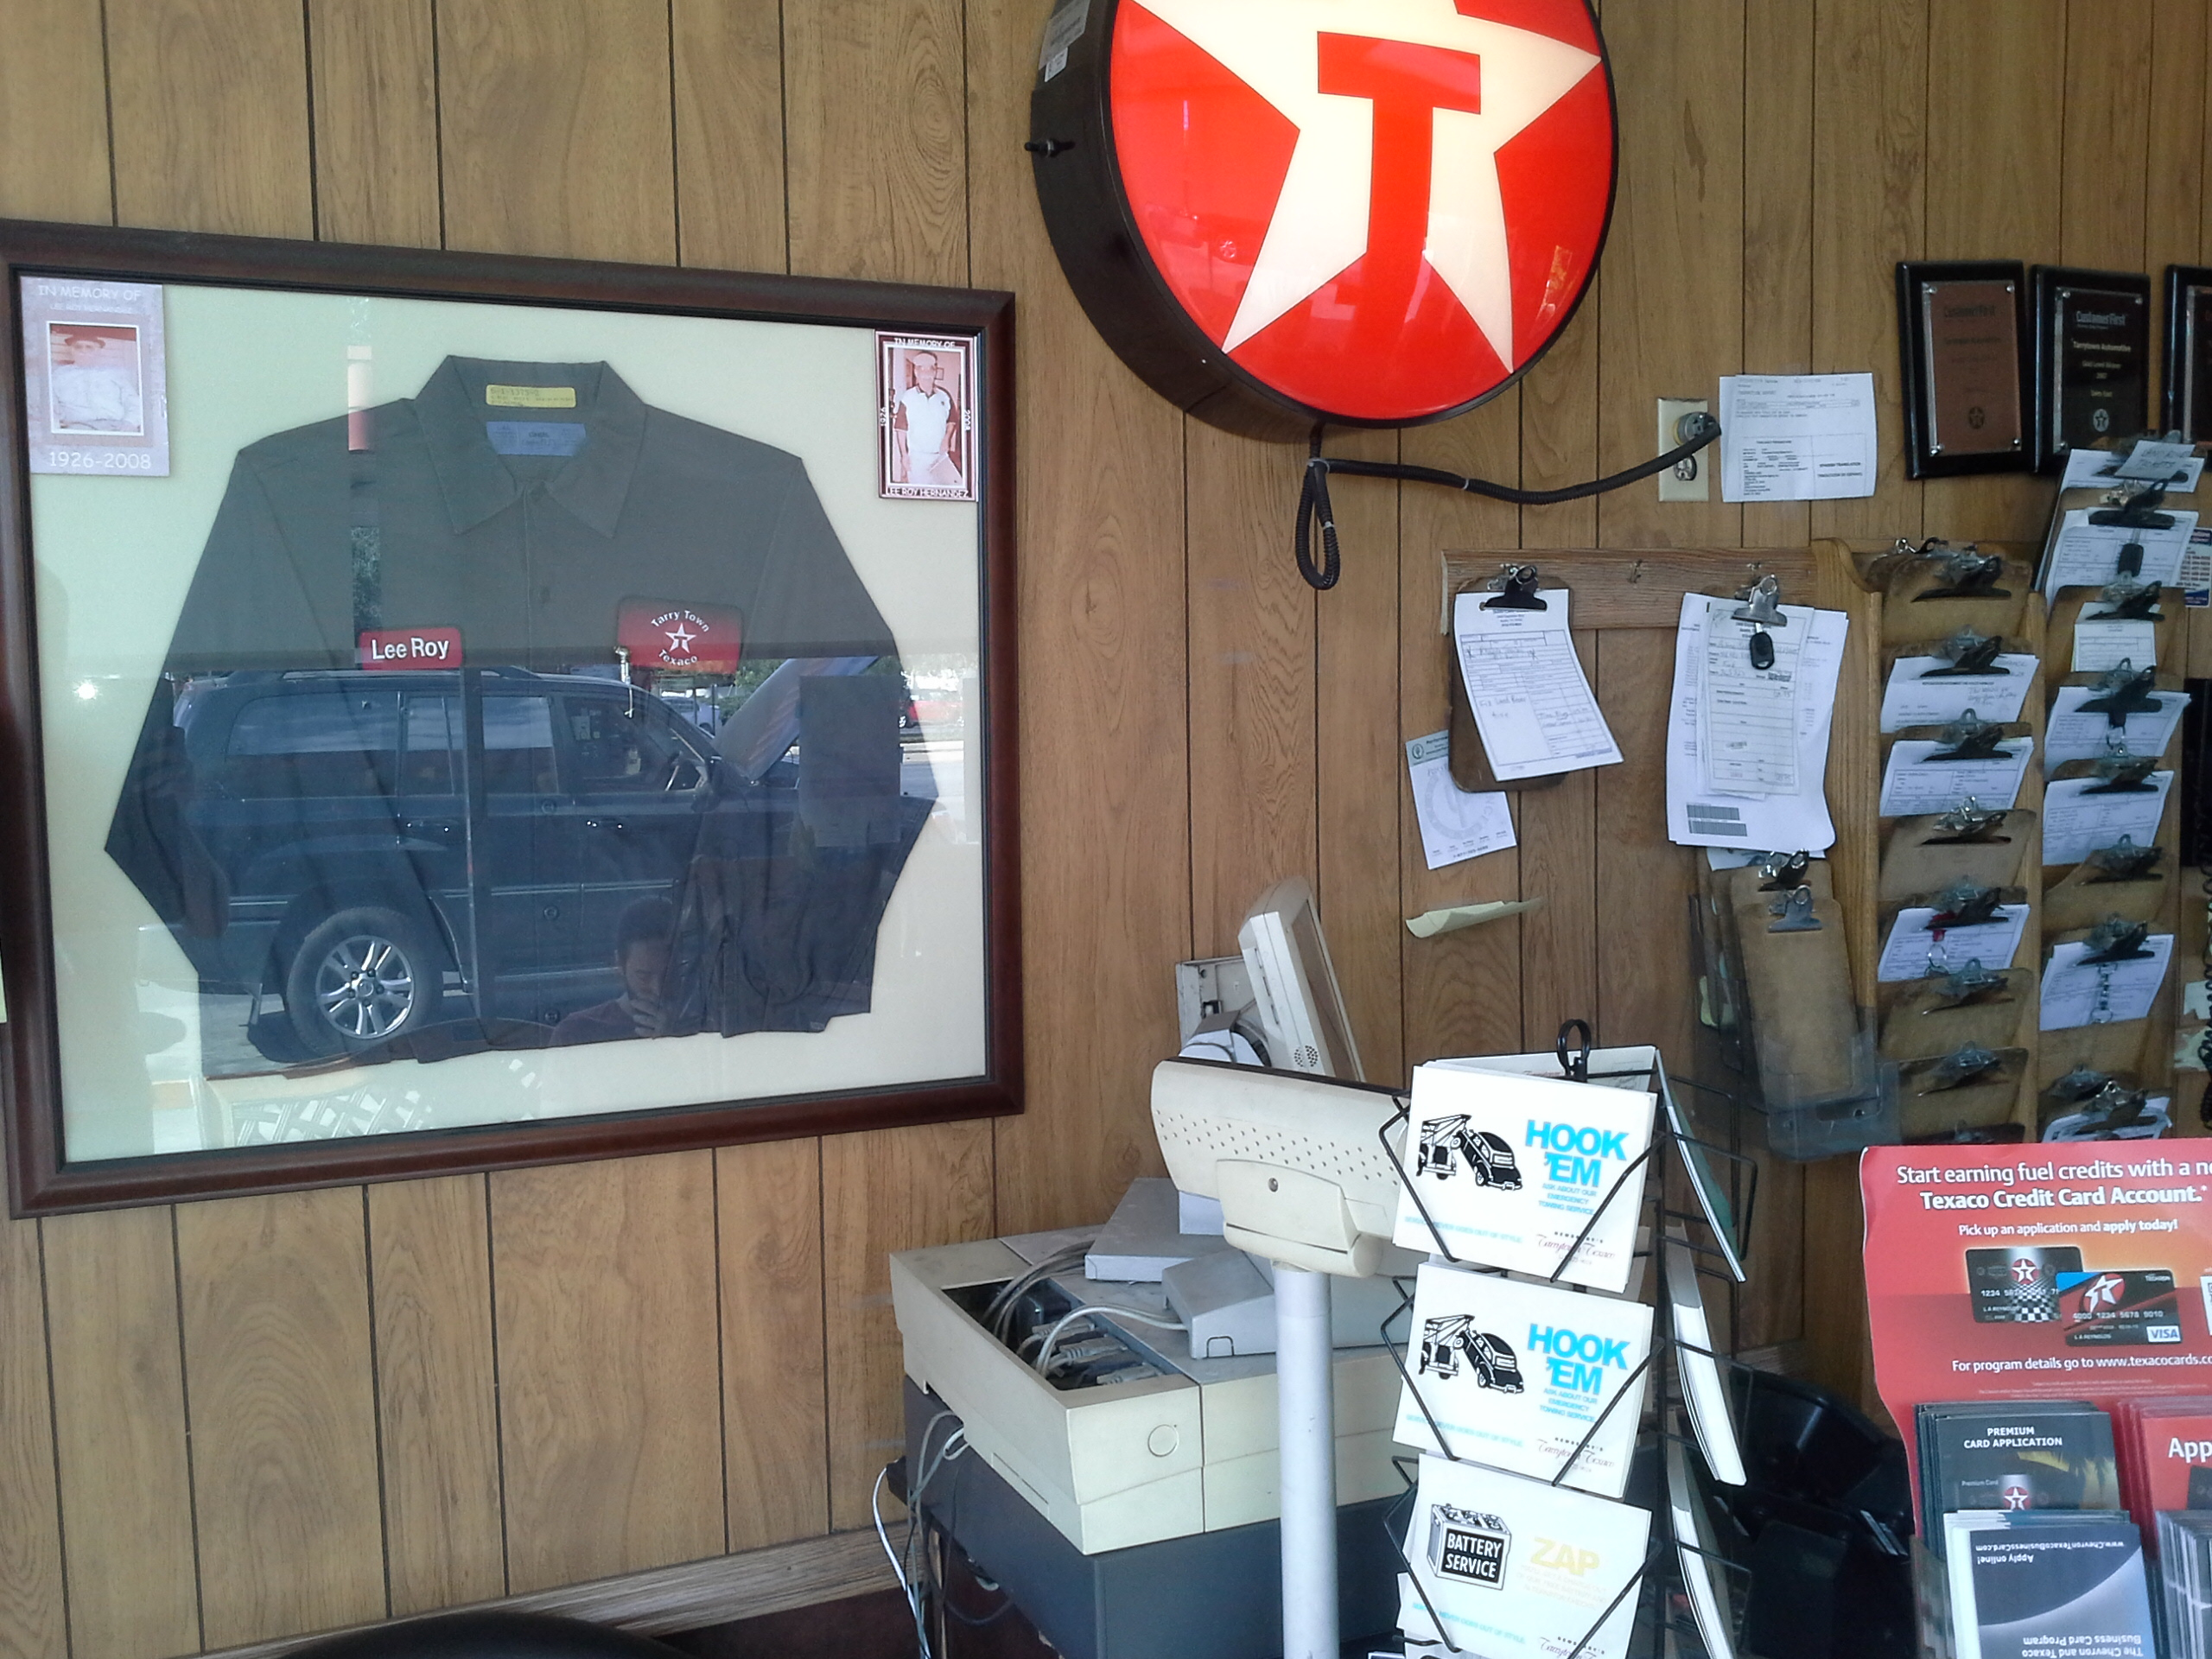 Tarrytown Texaco image 3